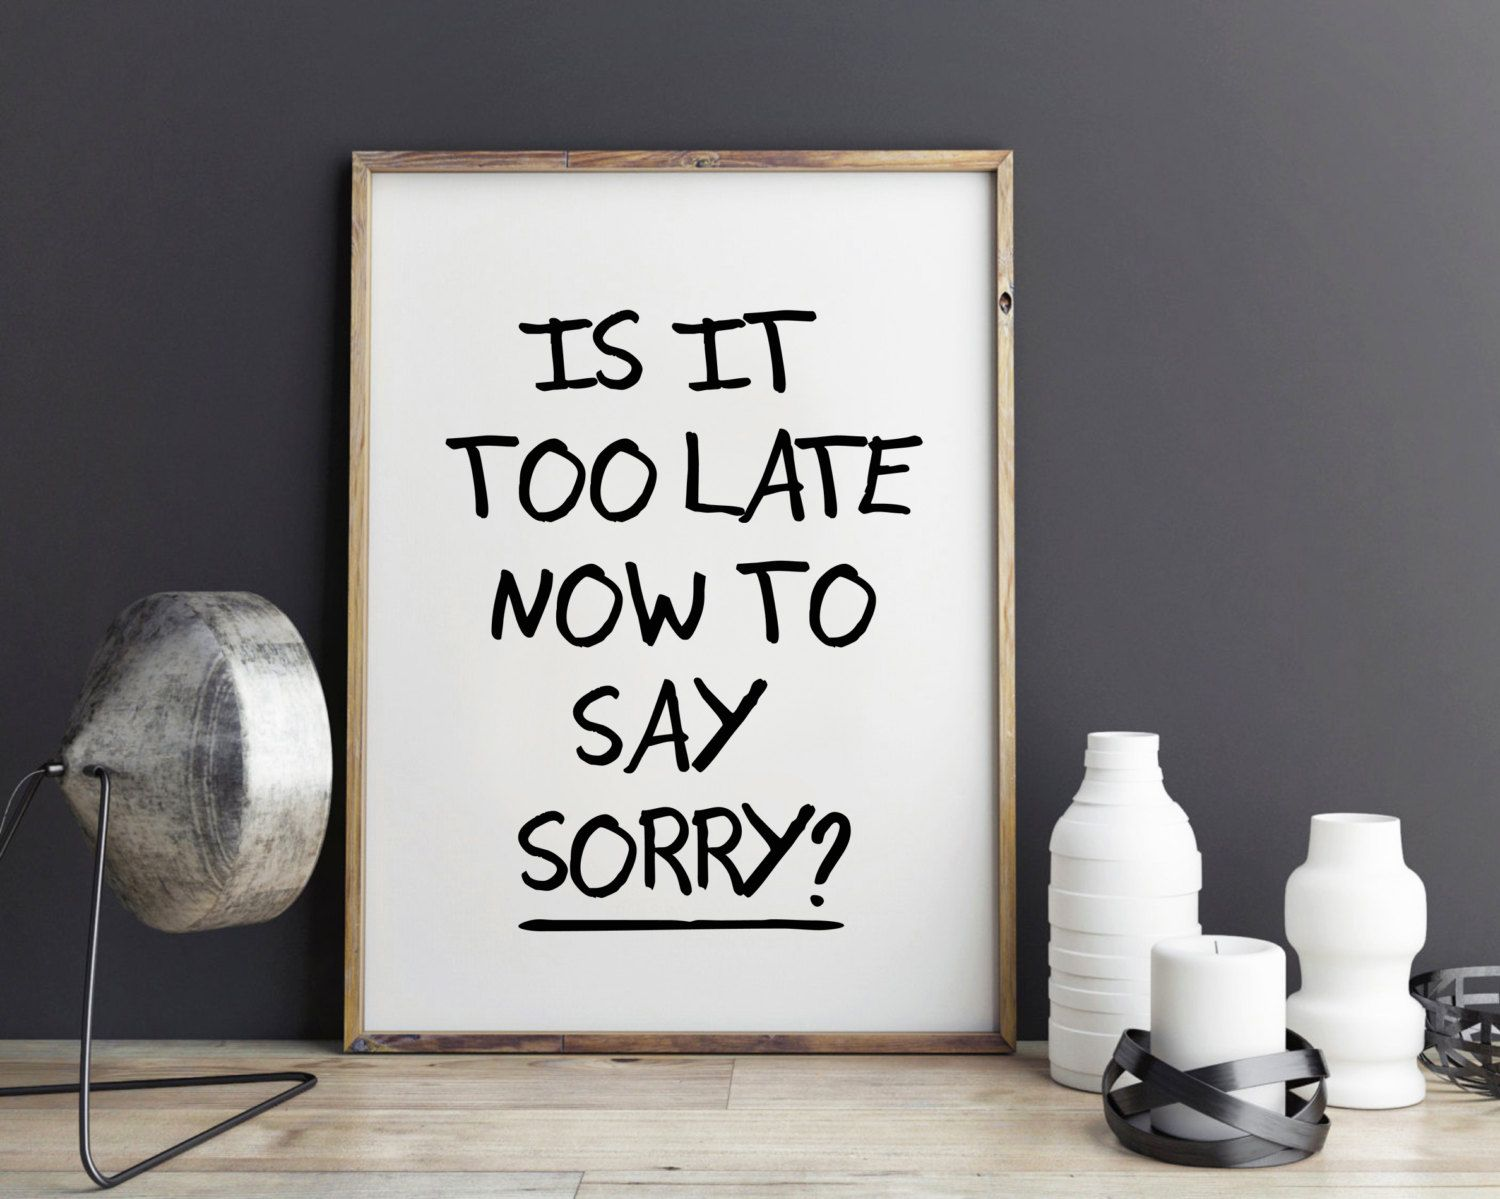 Justin bieber tumblr lyrics live quotes - Justin Bieber Quote Song Lyric Art Purpose Album Is It Too Late Now To Say Sorry Lyrics Dorm Decor Song Quotes